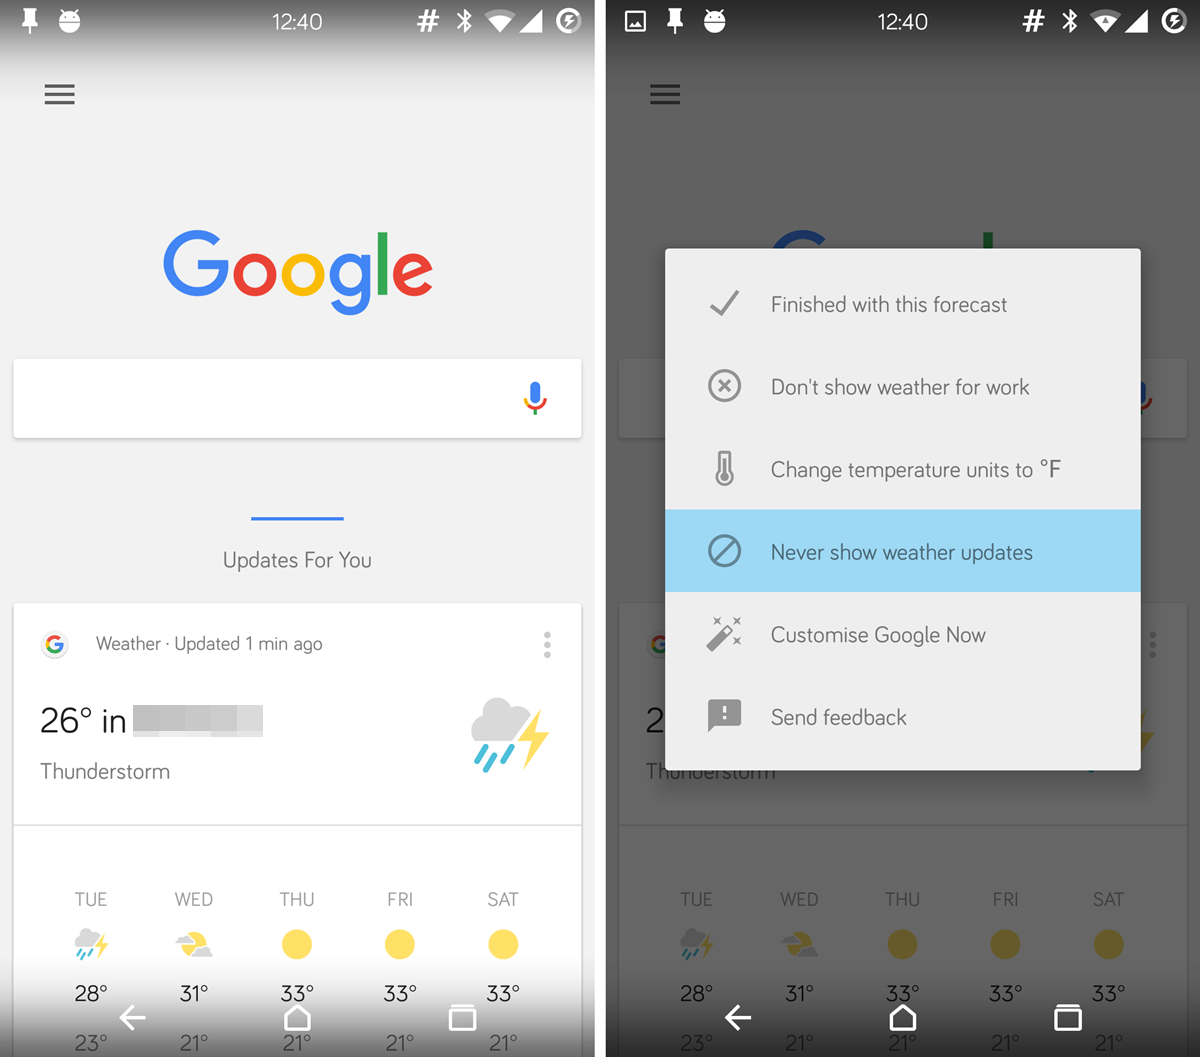 Tips to Help You Master Google App For iPhone